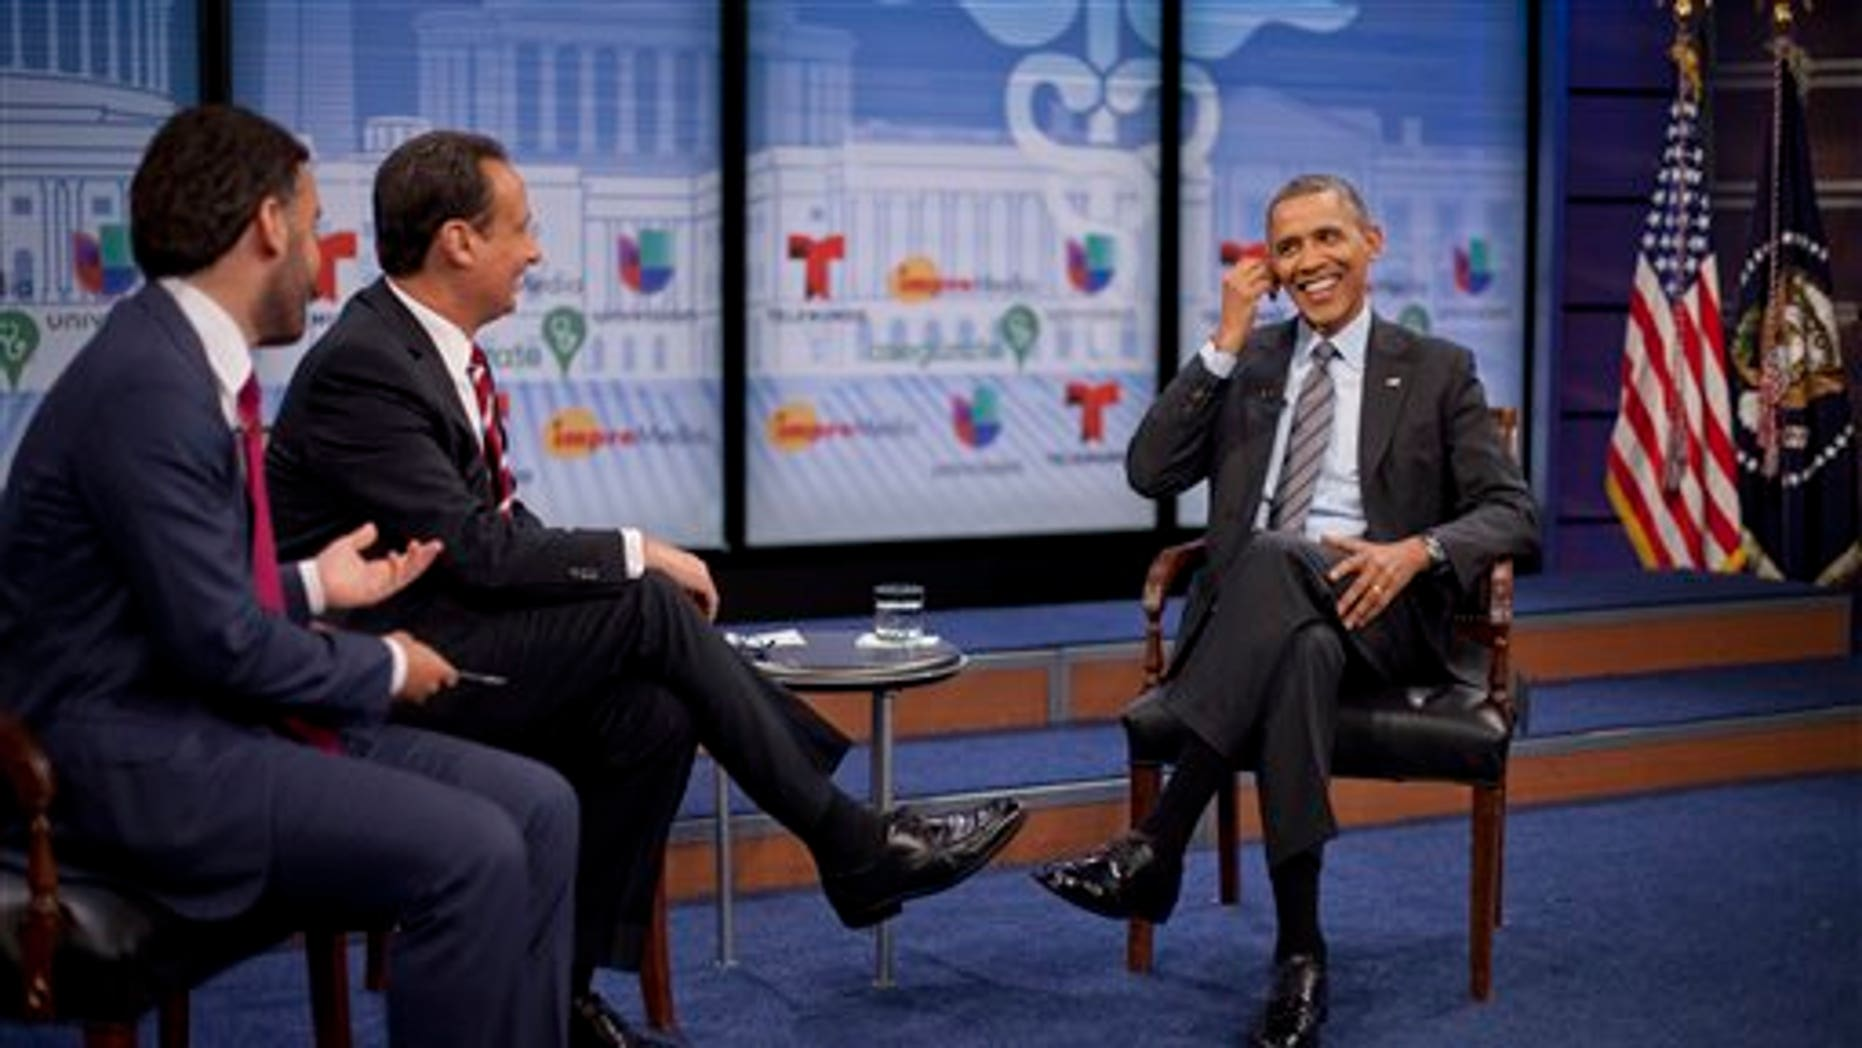 President Obama with television hosts Jose Diaz Balart and Enrique Acevedo, in Washington, Thursday, March 6, 2014.